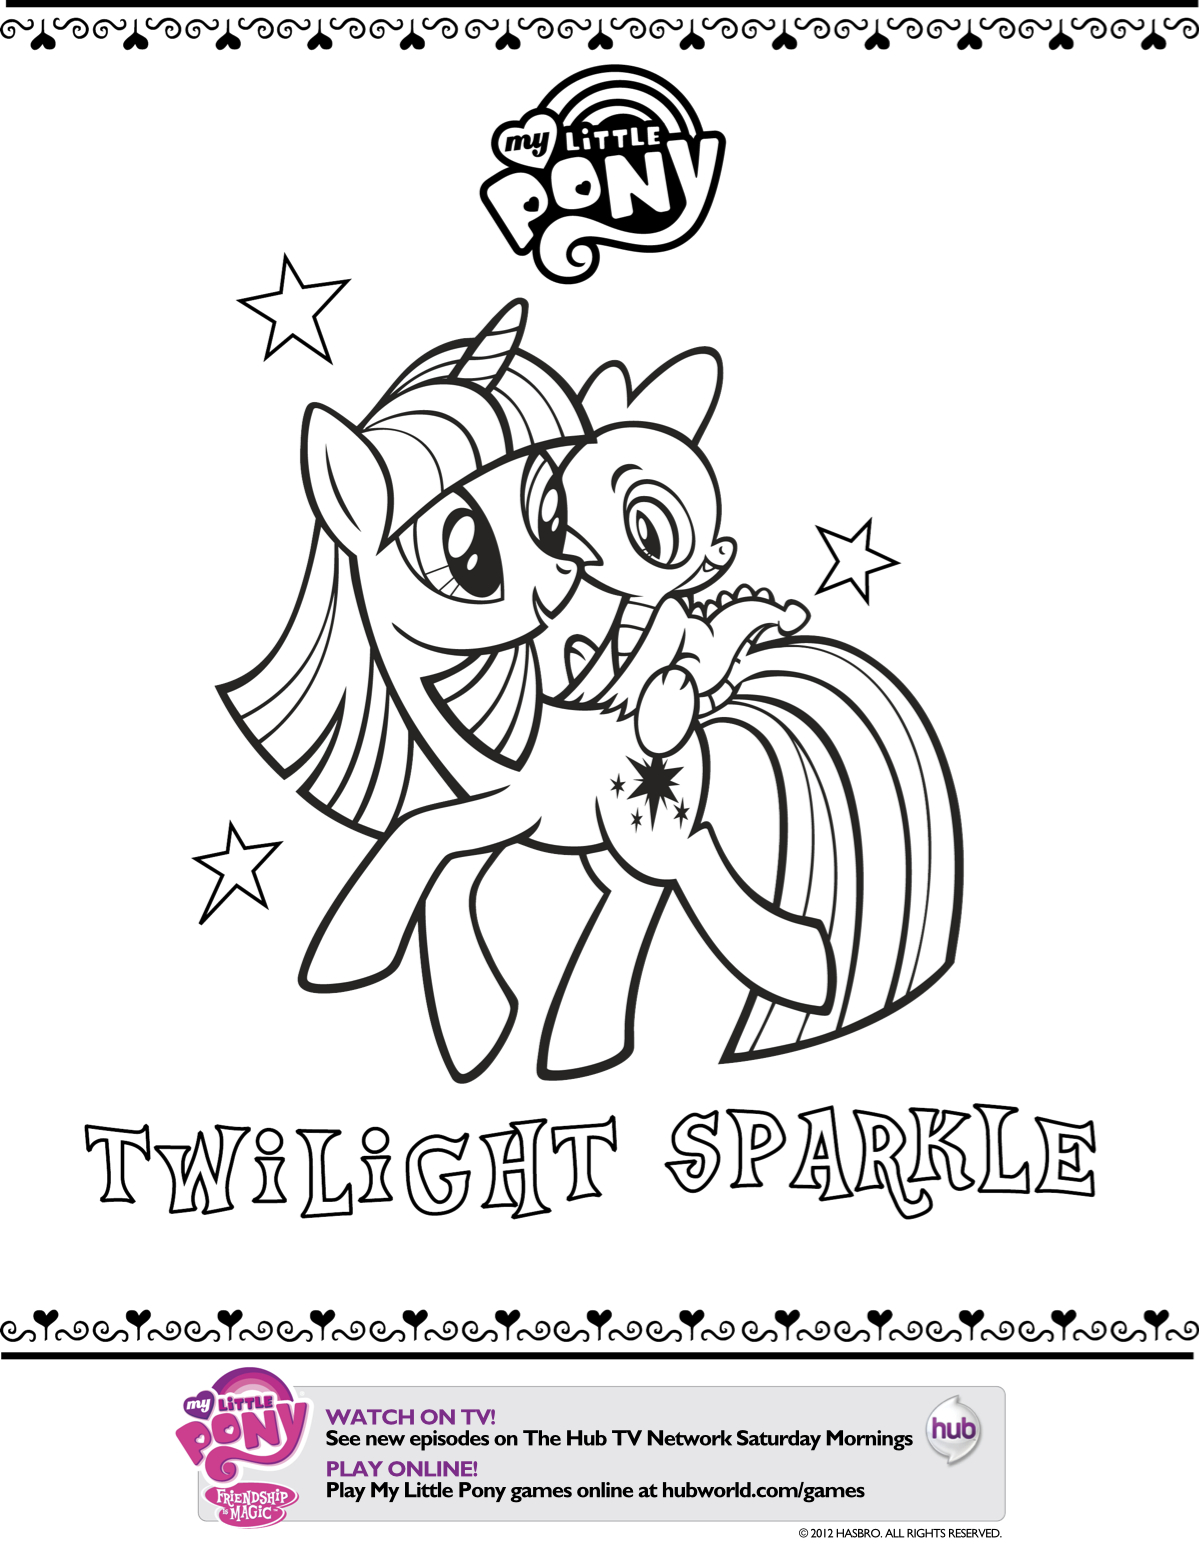 My Little Pony Twilight Sparkle Printable Coloring Page ...